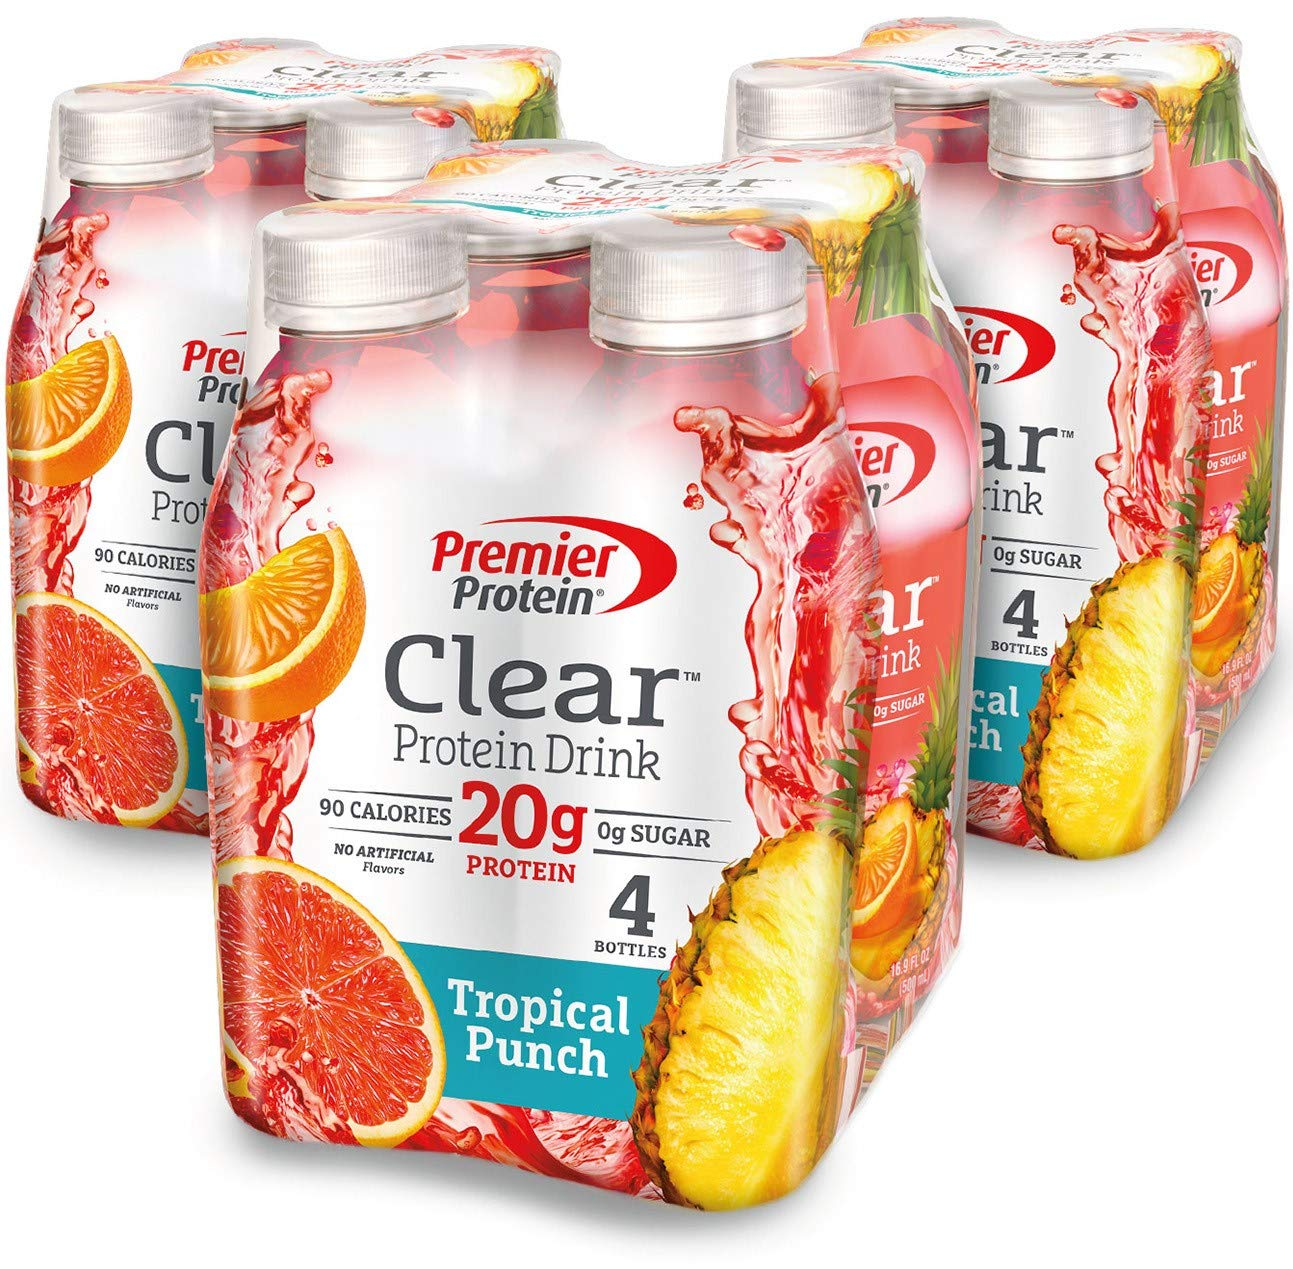 Premier Protein Clear Protein Drink, Tropical Punch, 16.9 fl oz Bottle, (12 Count) by Premier Protein